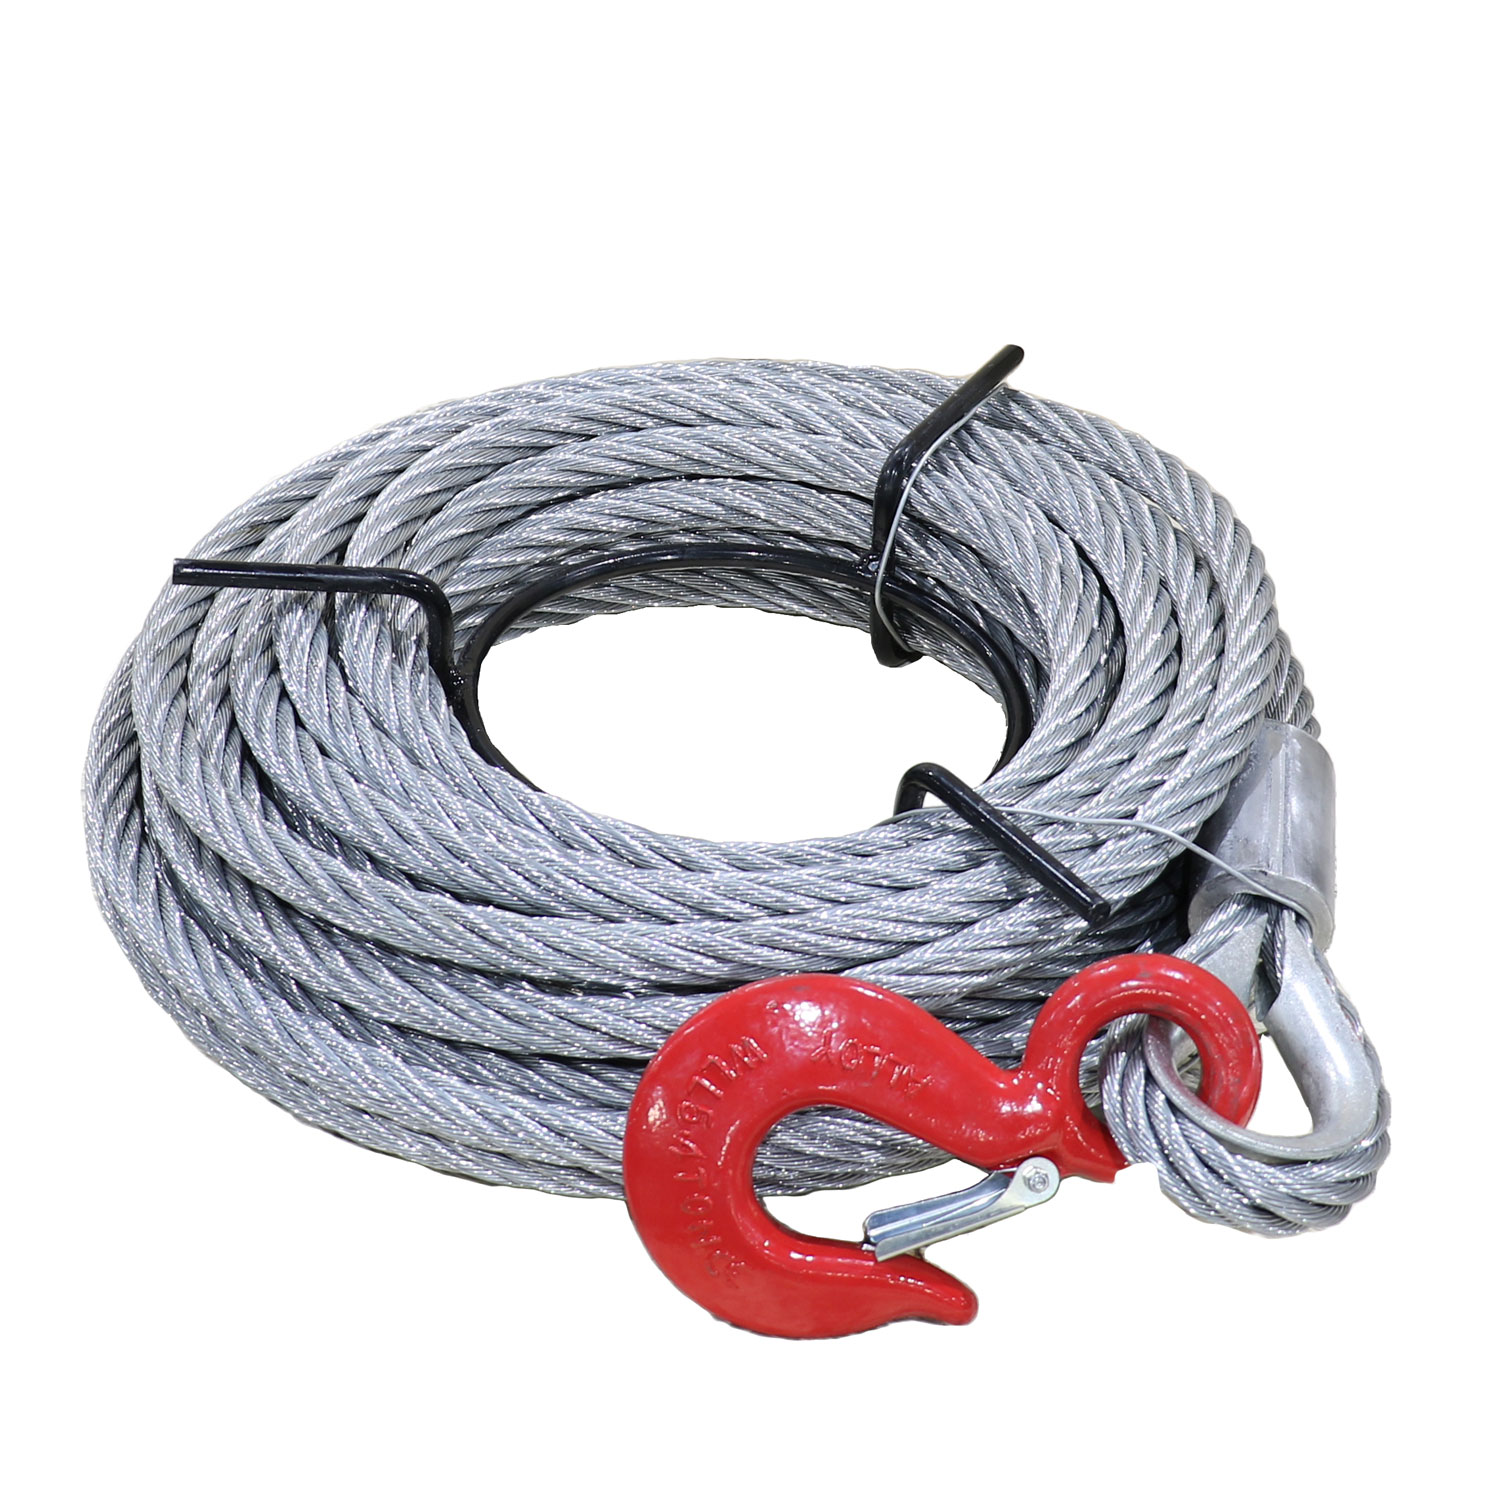 Cable for 11905 lbs Capacity, Tyler Tool Aluminum Wire Rope Winch